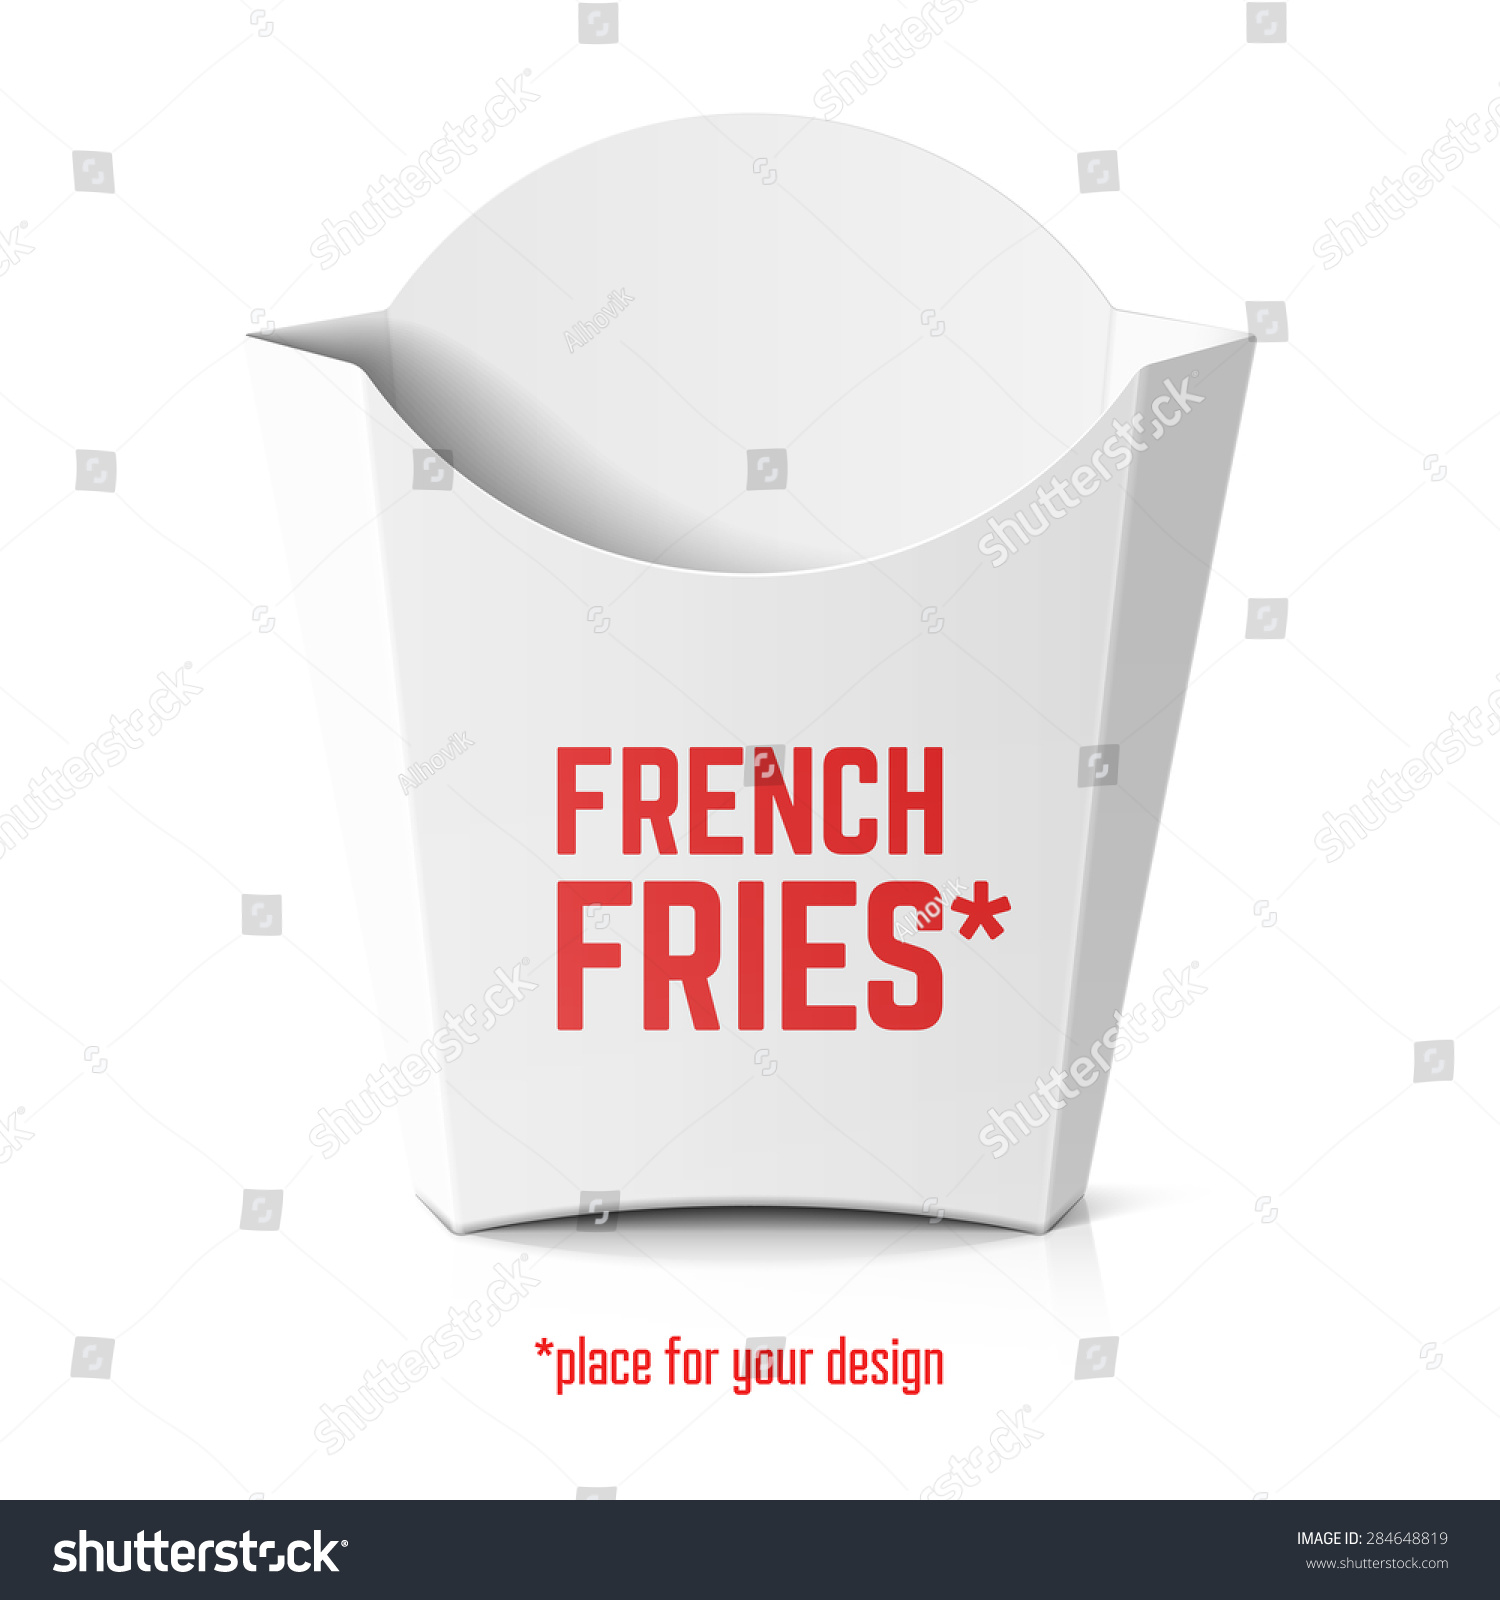 French fries white paper box template stock vector for French fries packaging template